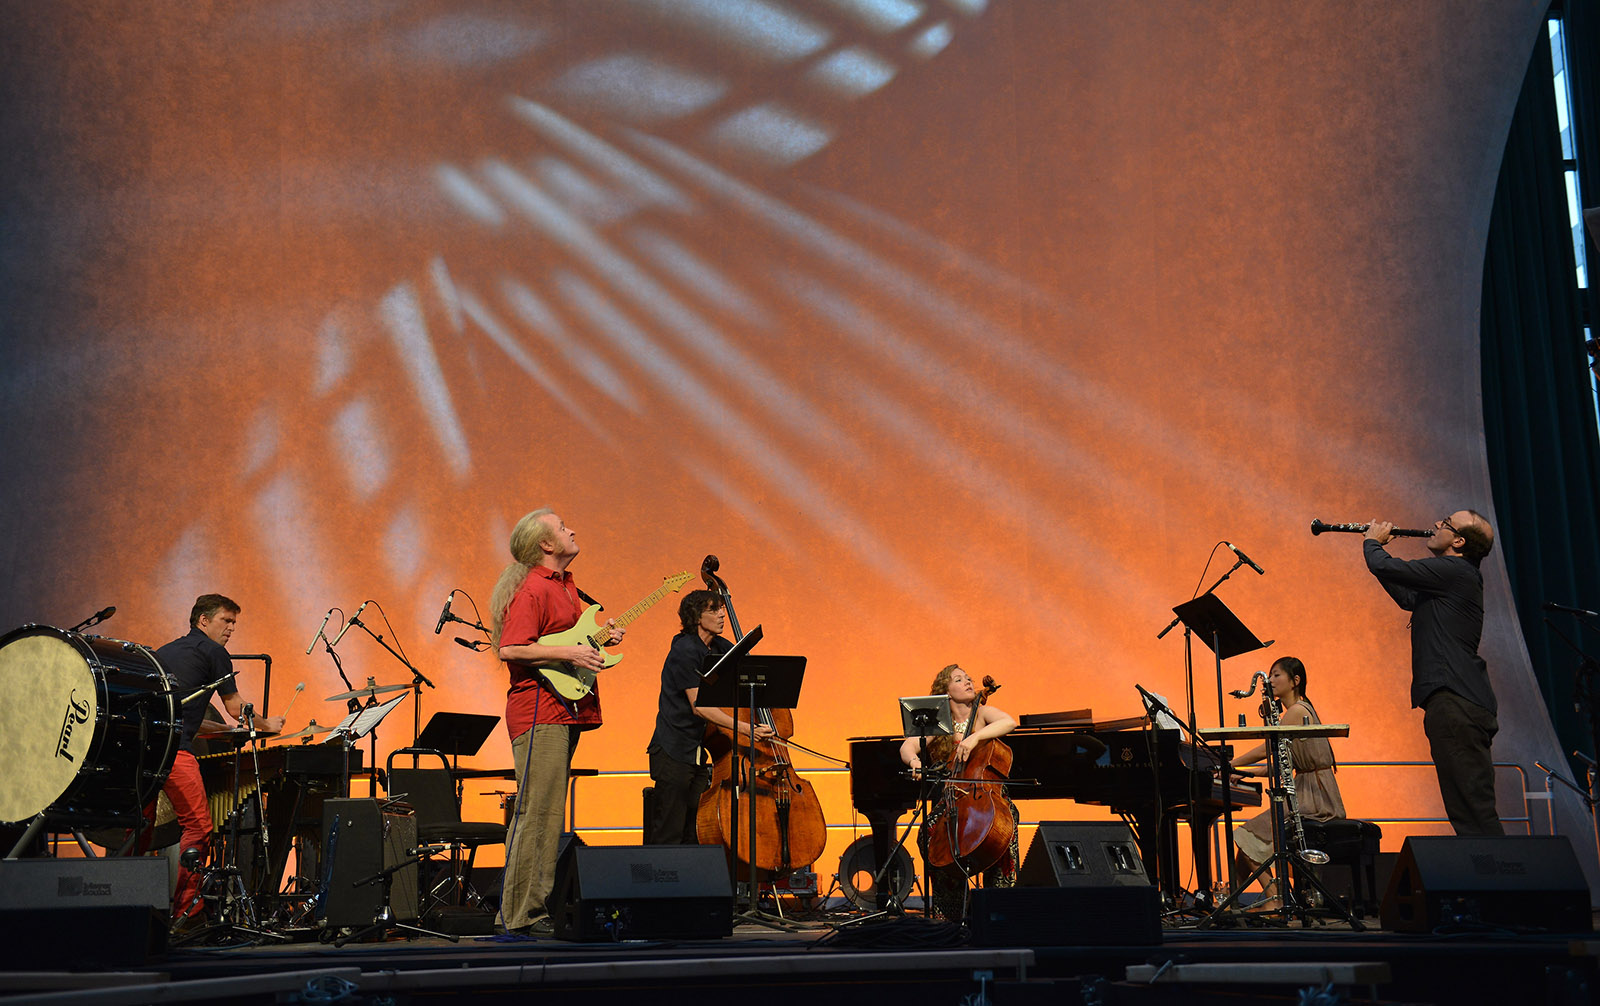 The Bang on a Can All-Stars (David Cossin, percussion; Mark Stewart, guitar; Robert Black, bass; Ashley Bathgate, cello; Vicky Chow, piano; Ken Thomson, clarinet) performing at the Bang on a Can Marathon at the Winter Garden at Brookfield Place, New York, on June 22, 2014